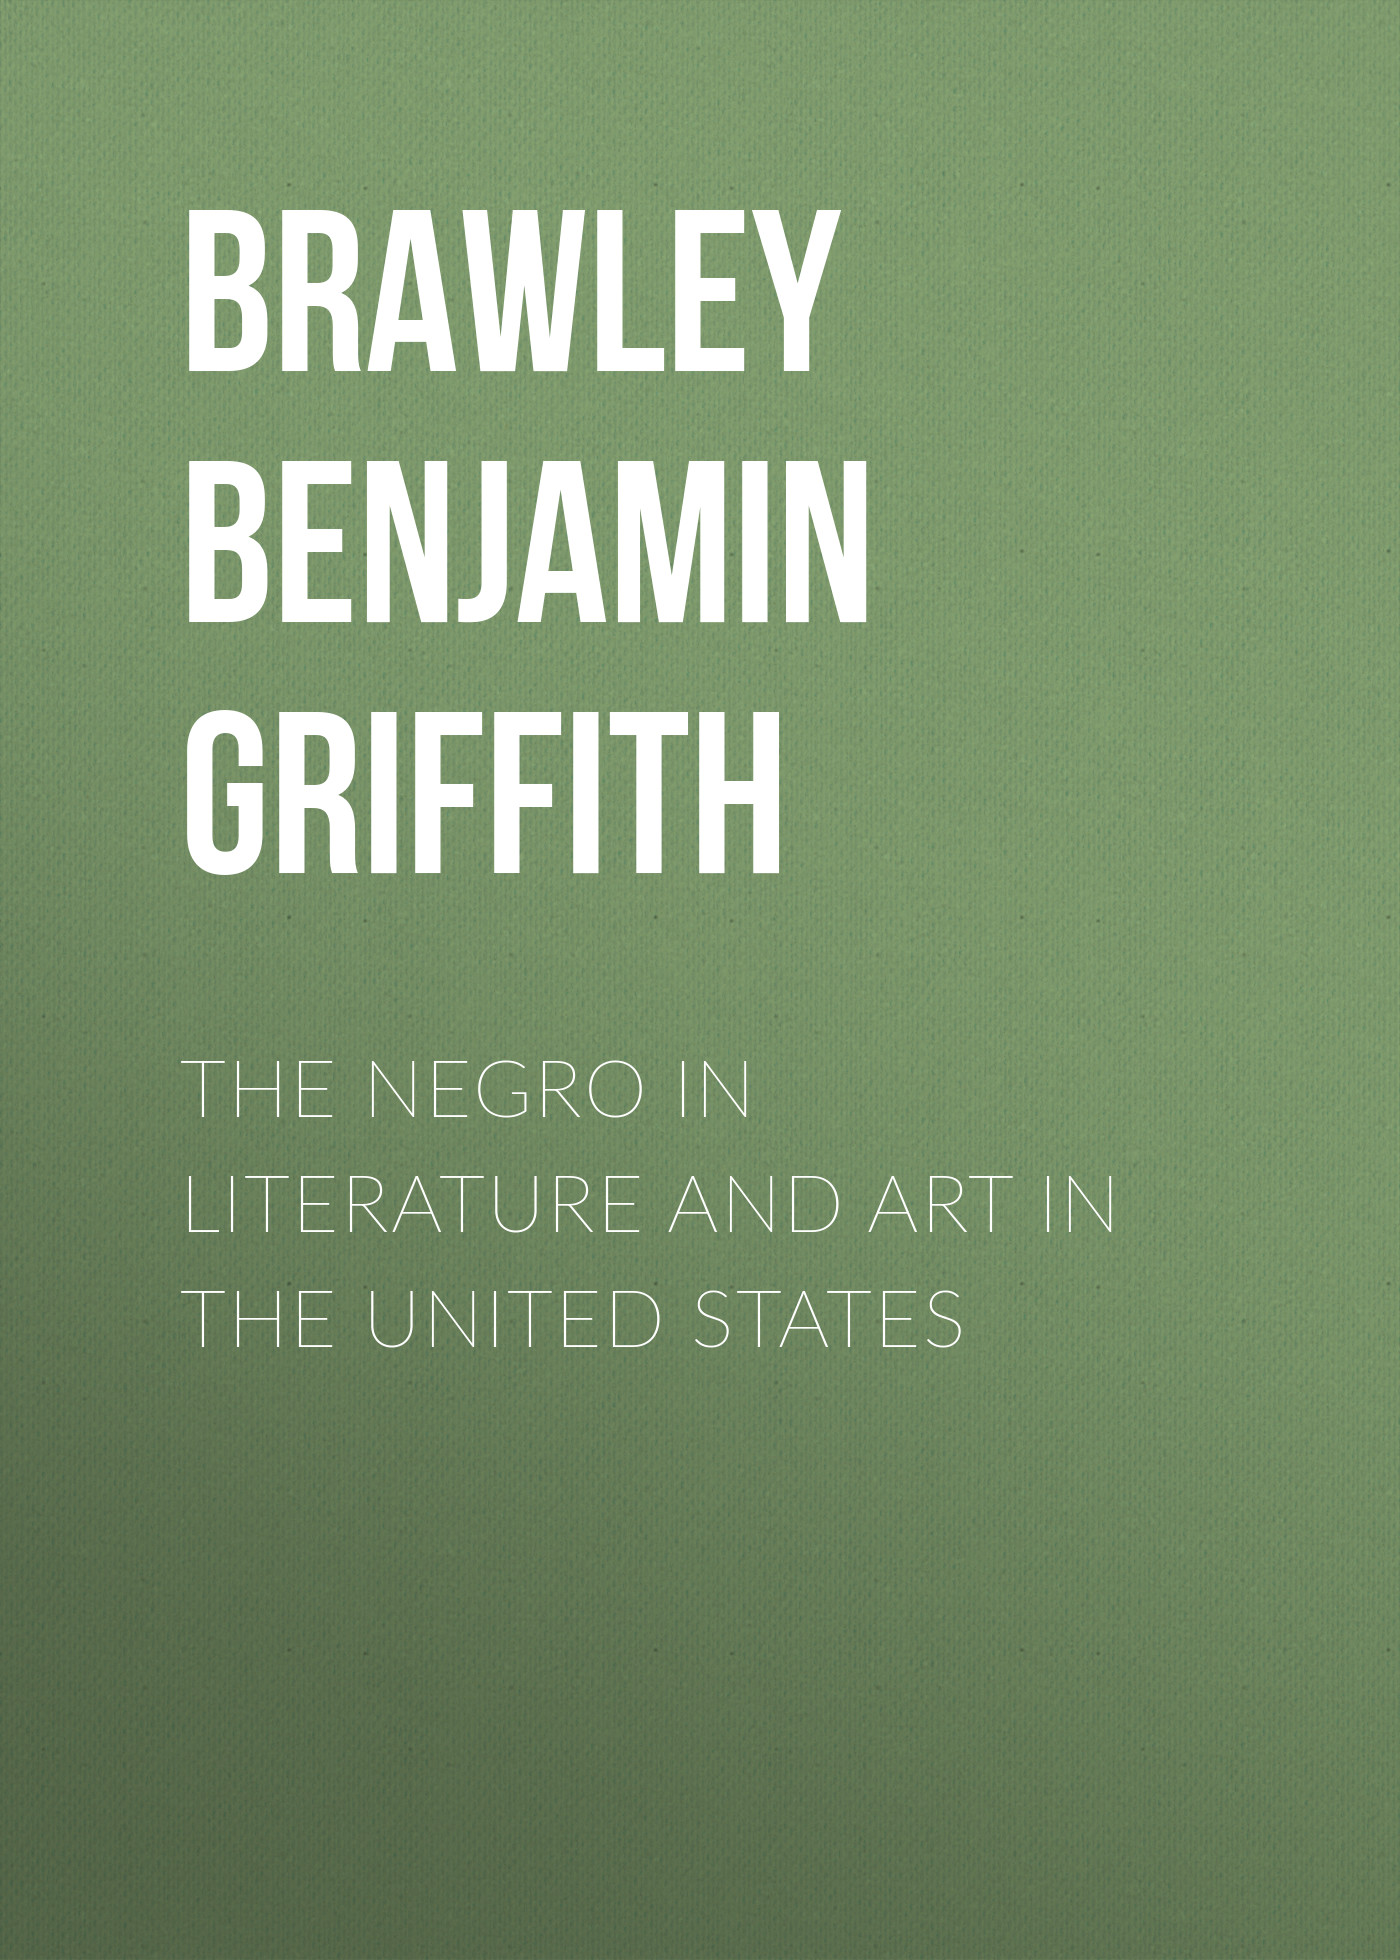 Brawley Benjamin Griffith The Negro in Literature and Art in the United States [zob] the united states bussmann nh2am 400nhm2b 400a 500v fuse fuse original authentic